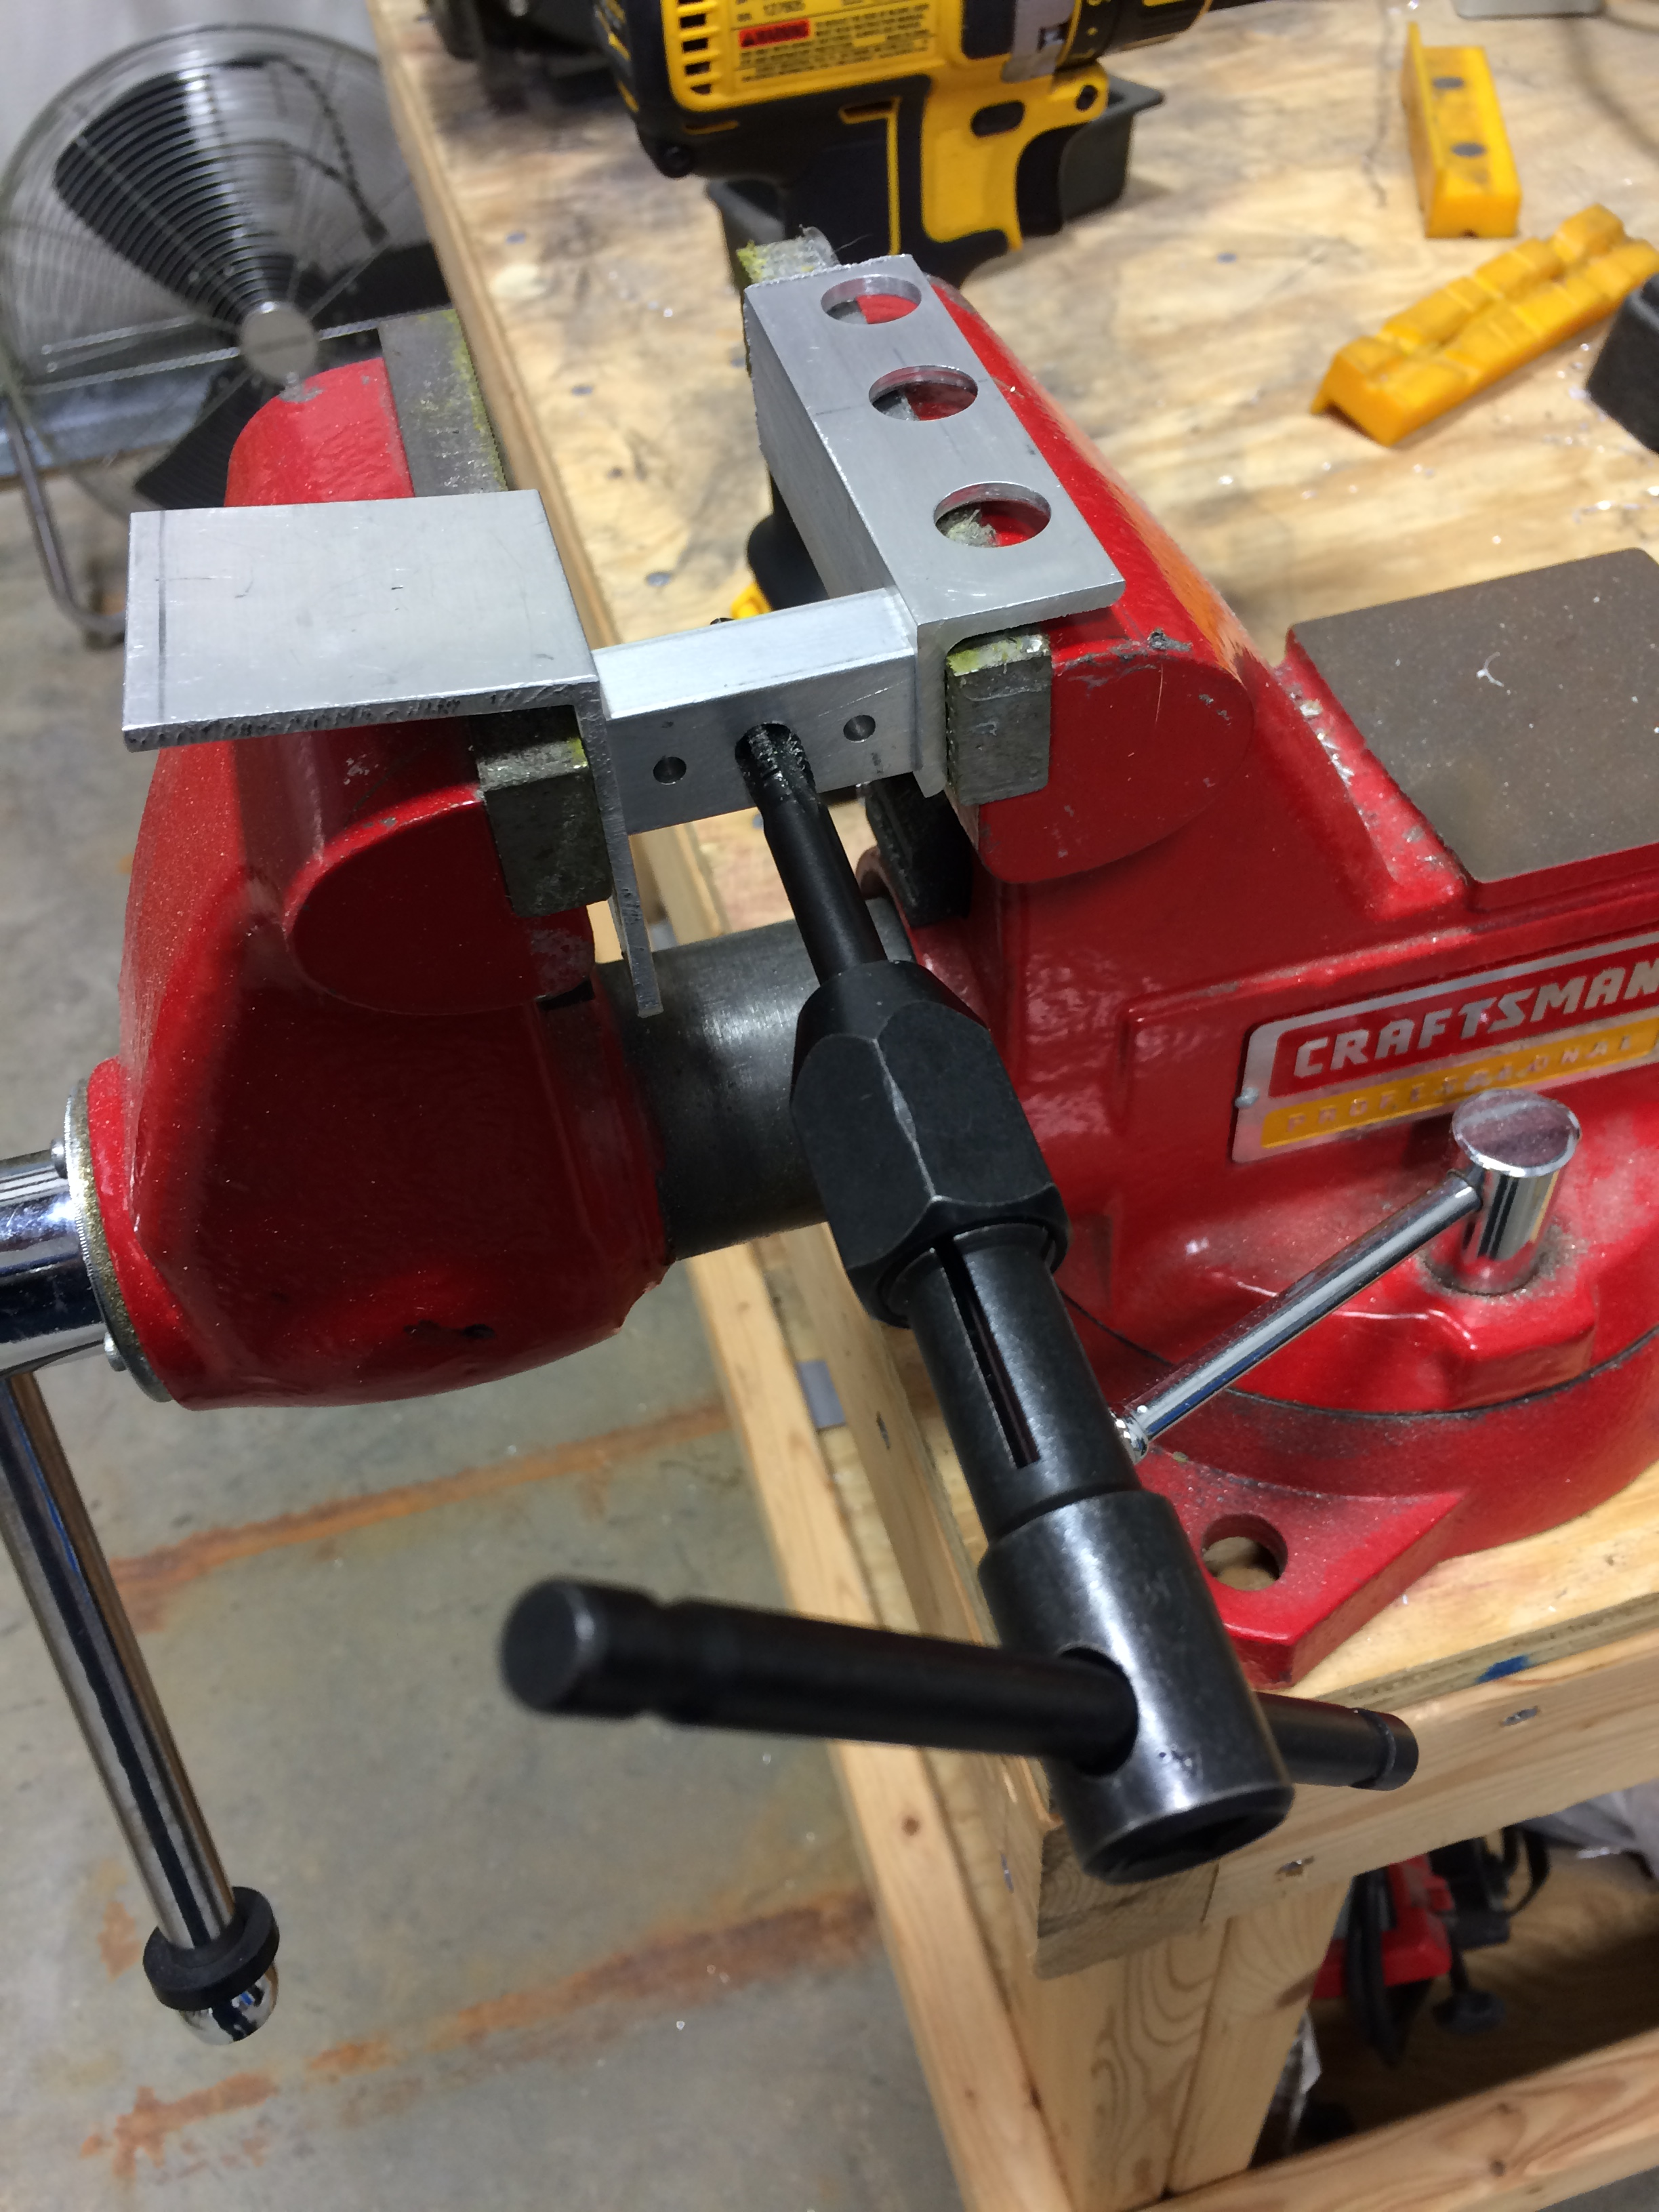 Tapping the forward strut attach points